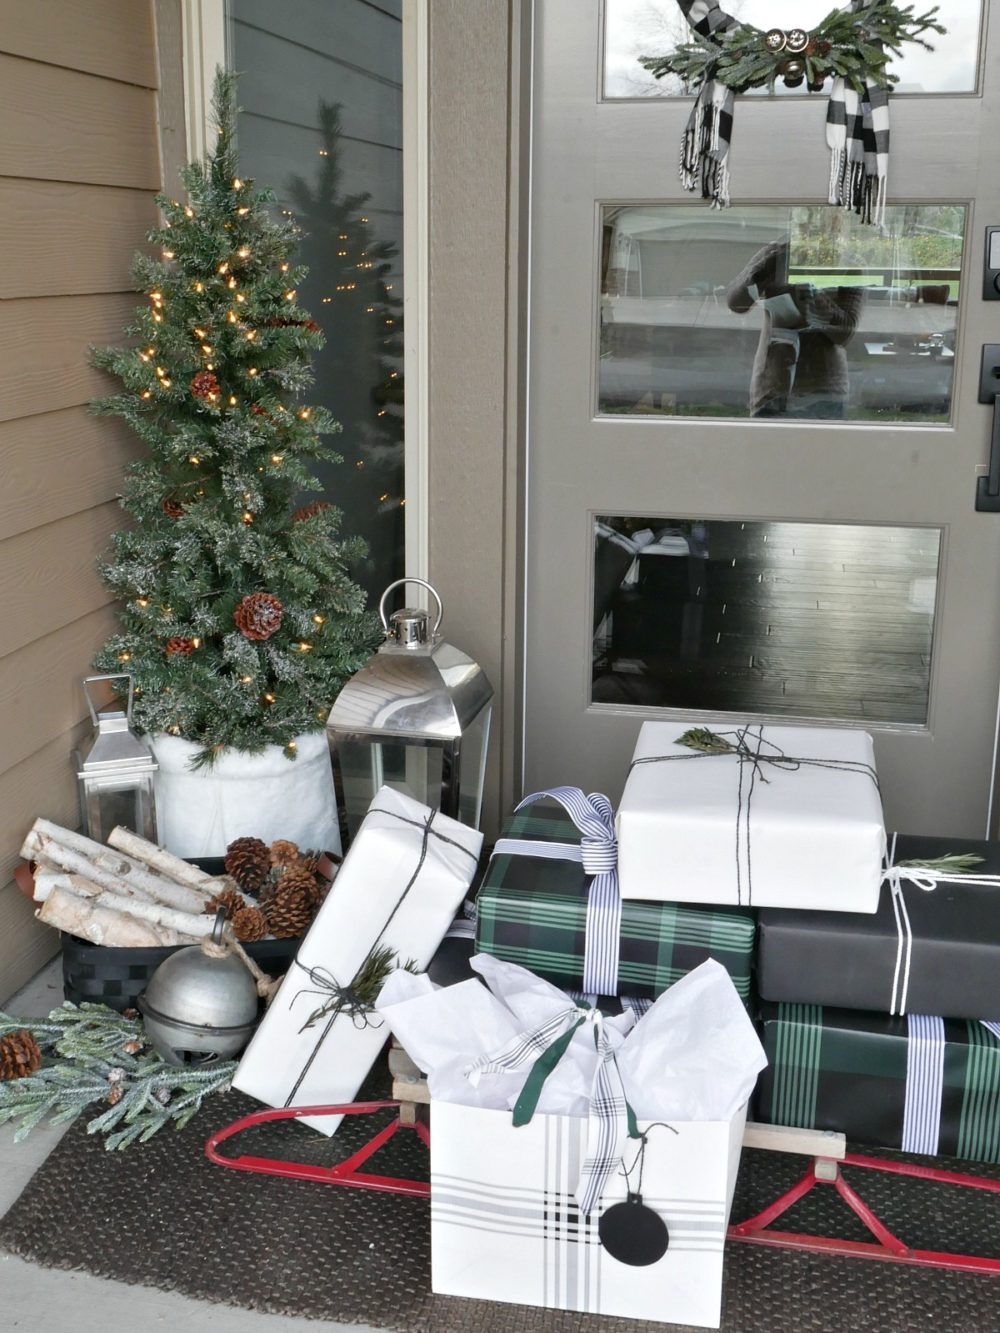 Green and Black Christmas Porch featuring mini trees, a sweater wreath and lots of wintery accents for a festive yet elegant look!